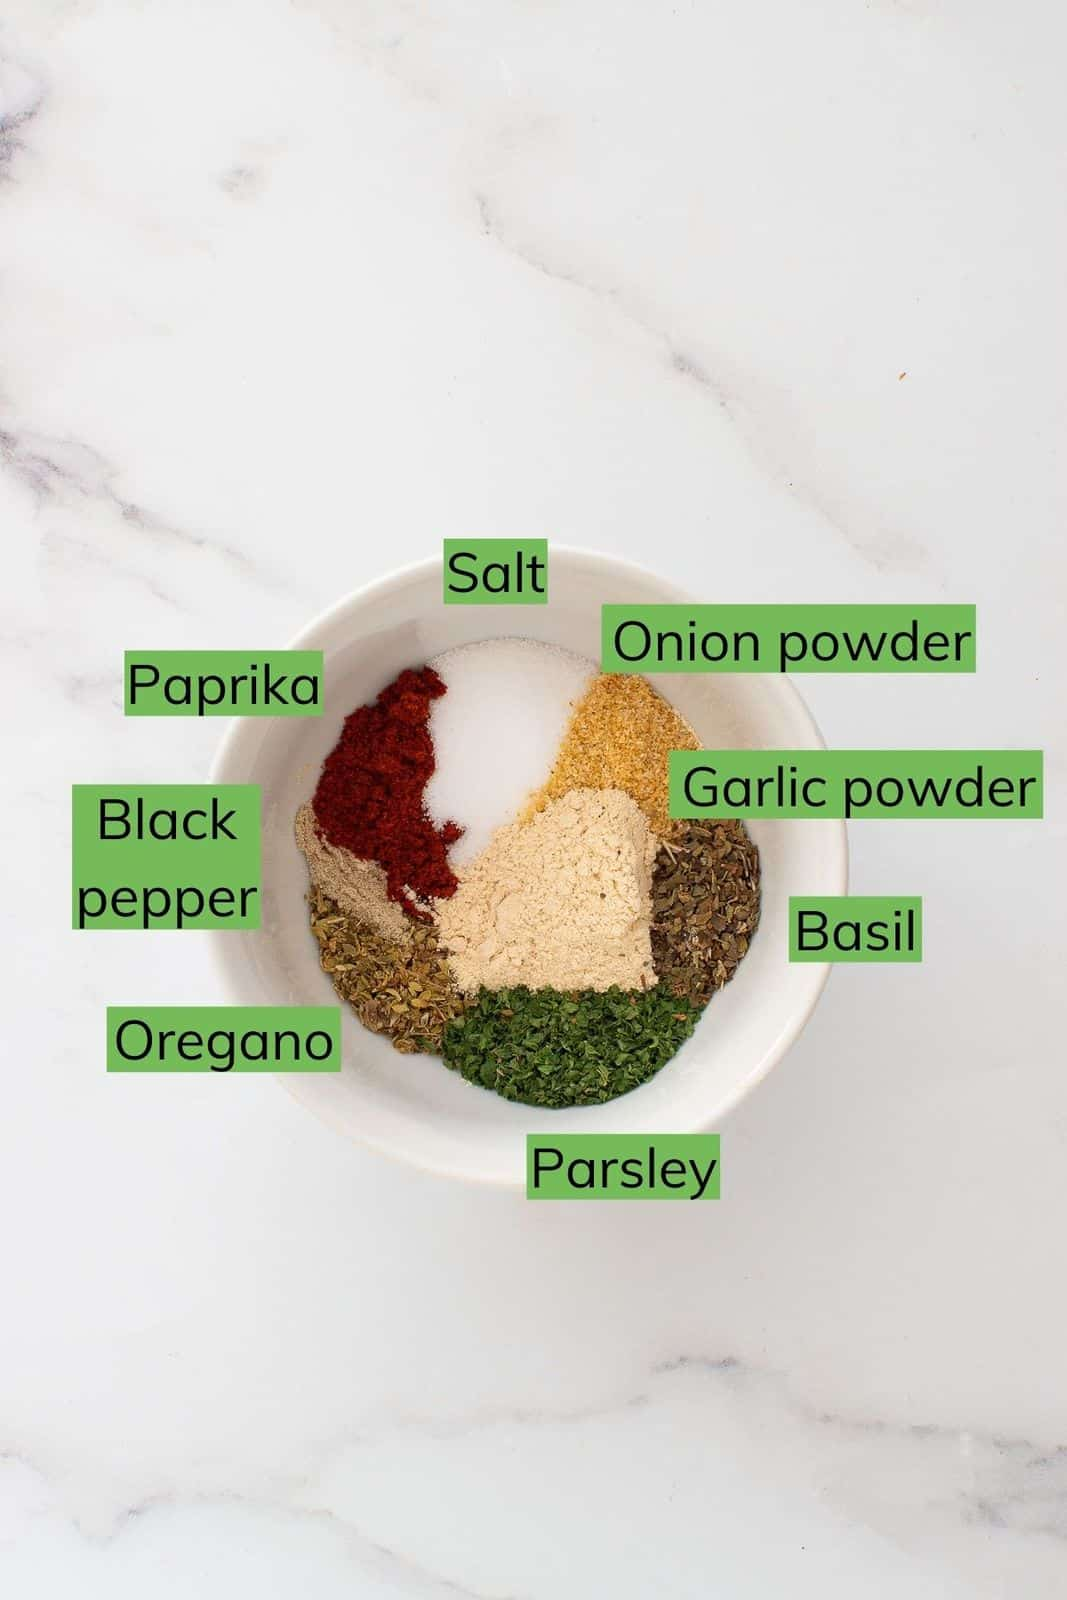 Ingredients for french fry seasoning.